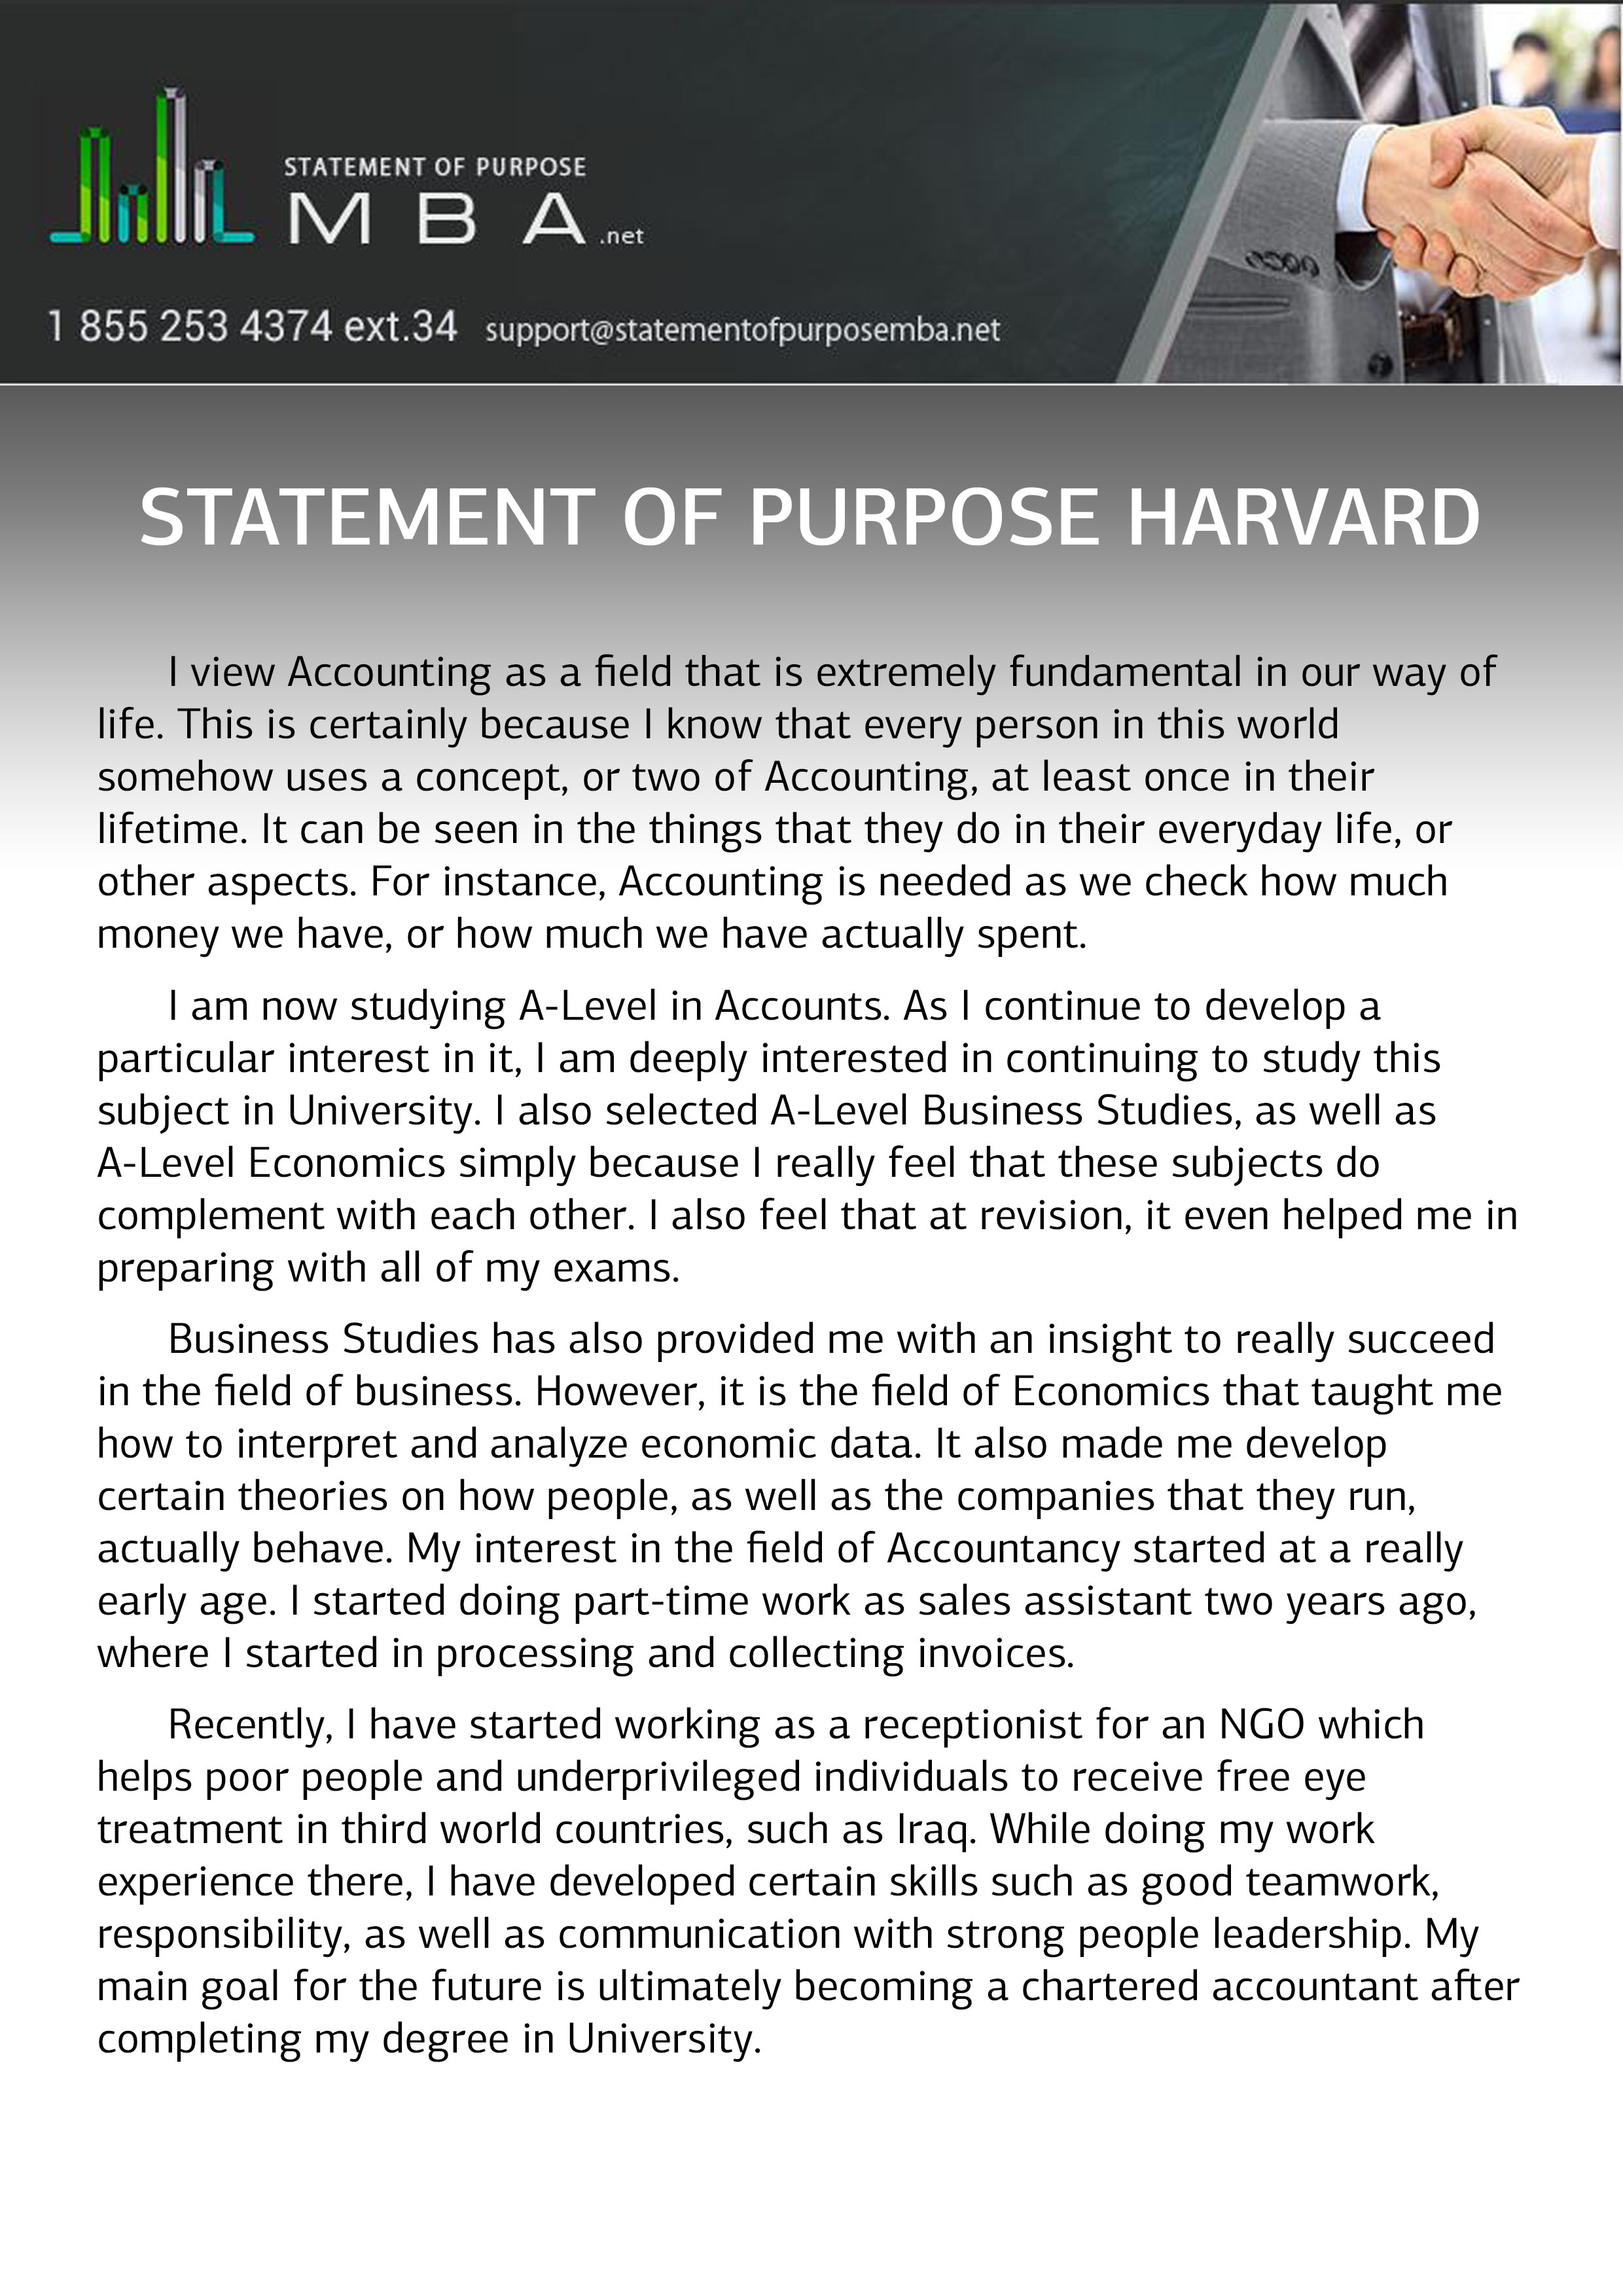 002 Stanford Mba Essay Sample Harvard Business School Application Statement Of Pu Formats Columbia Essays Best Ie Phenomenal 2019 Analysis Tips Full